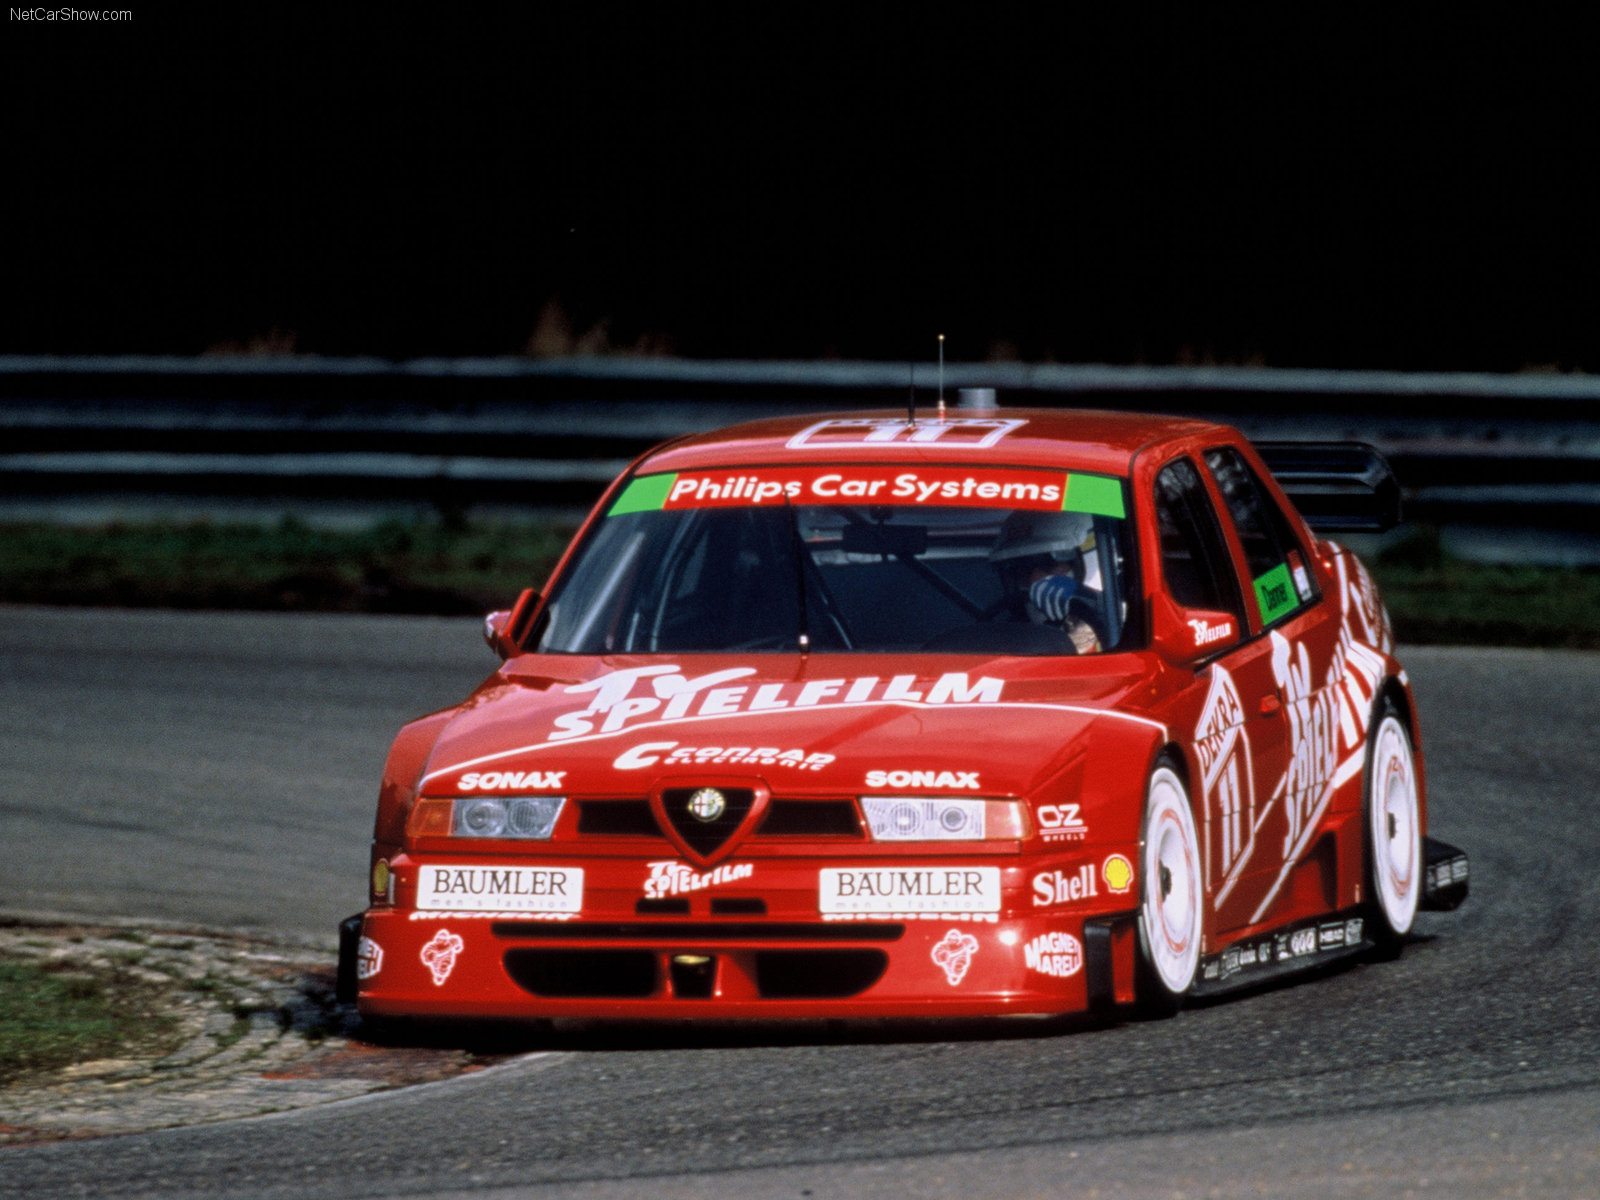 2009 Alfa Romeo 155 2.5 V6 TI DTM photo - 9